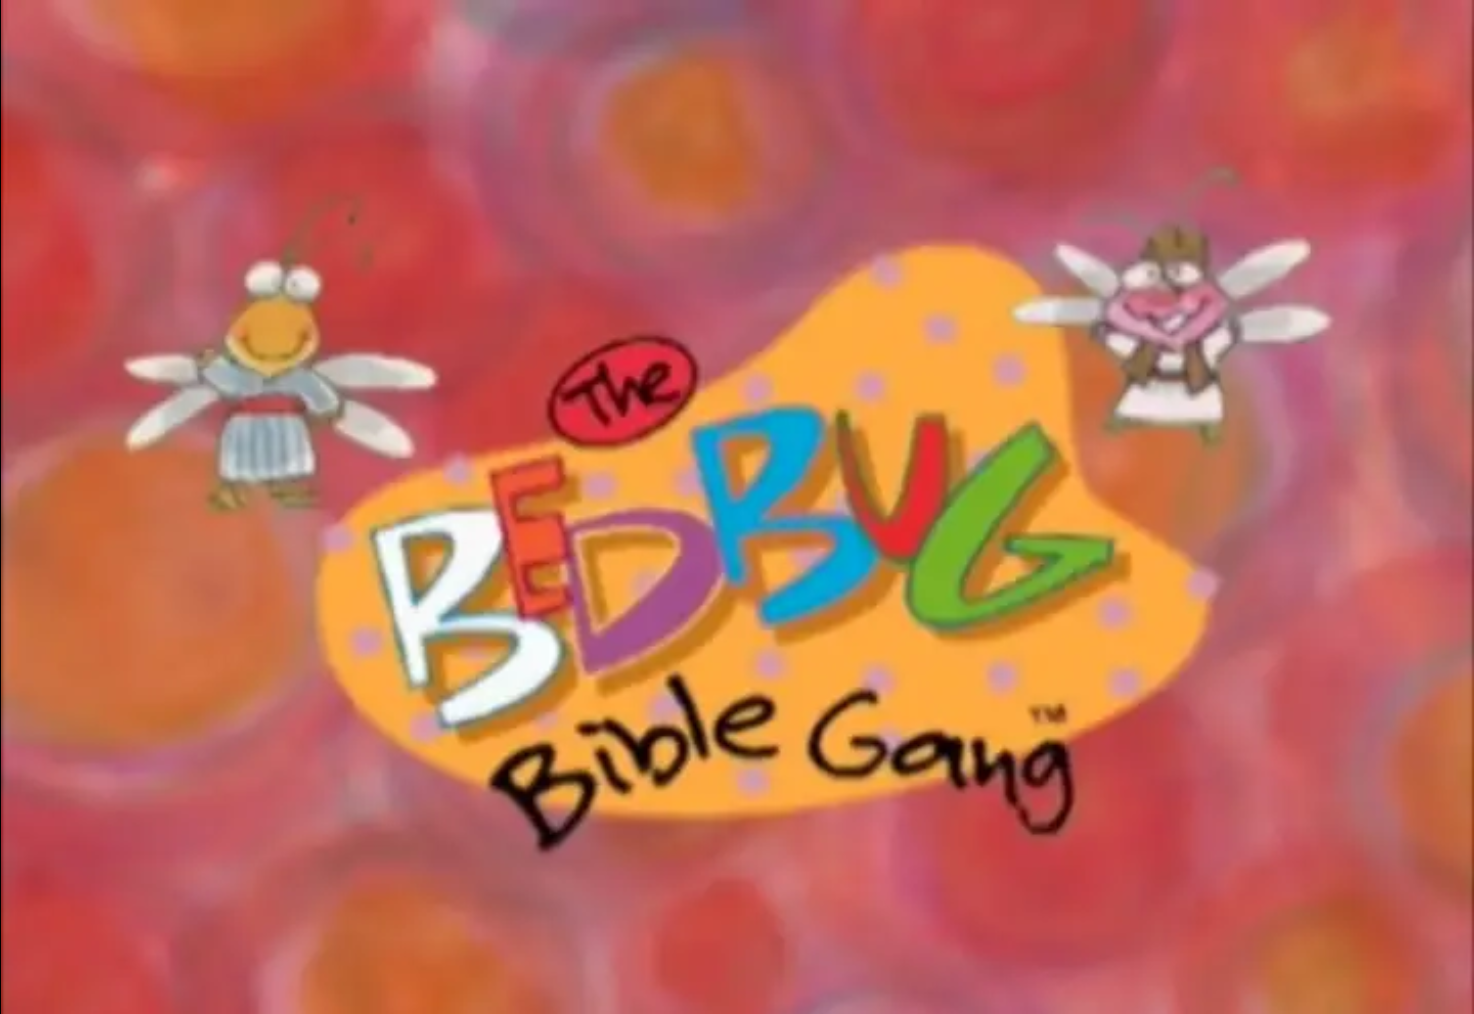 Bedbug Bible Gang - Easter Party!